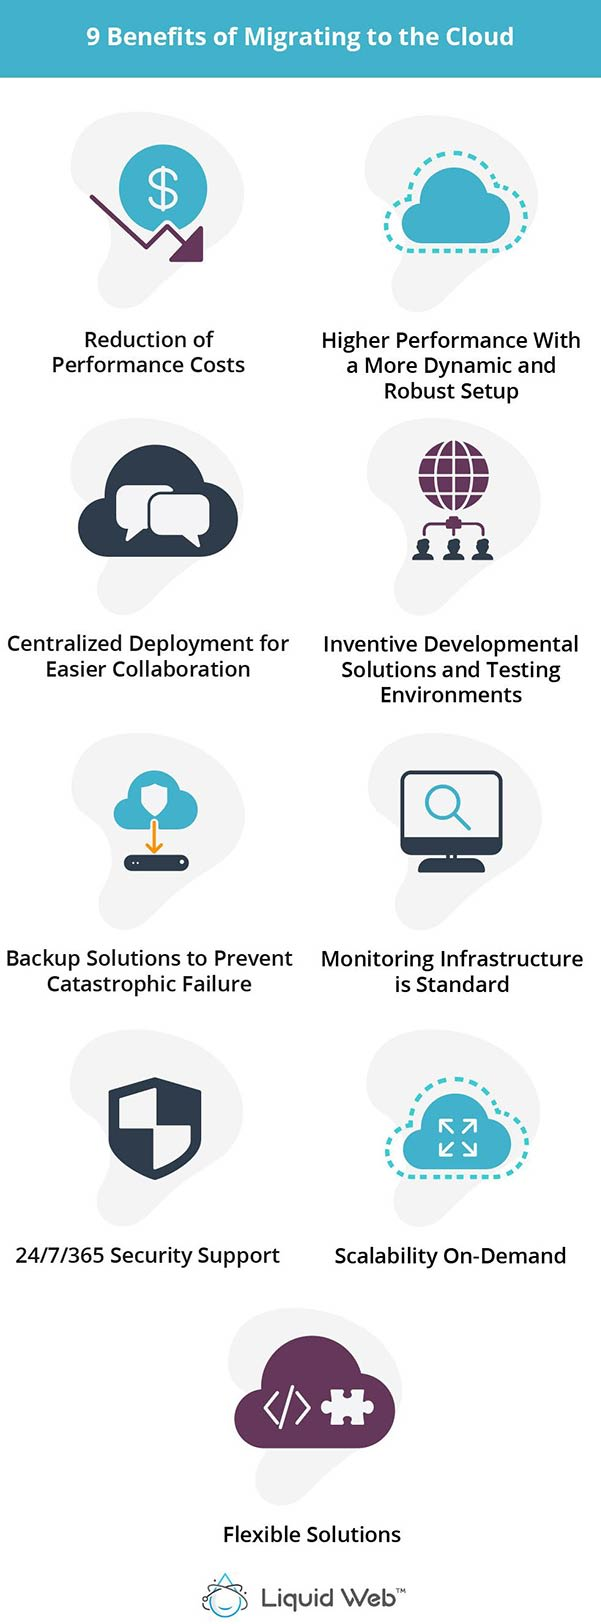 The 9 Benefits of Migrating to the Cloud